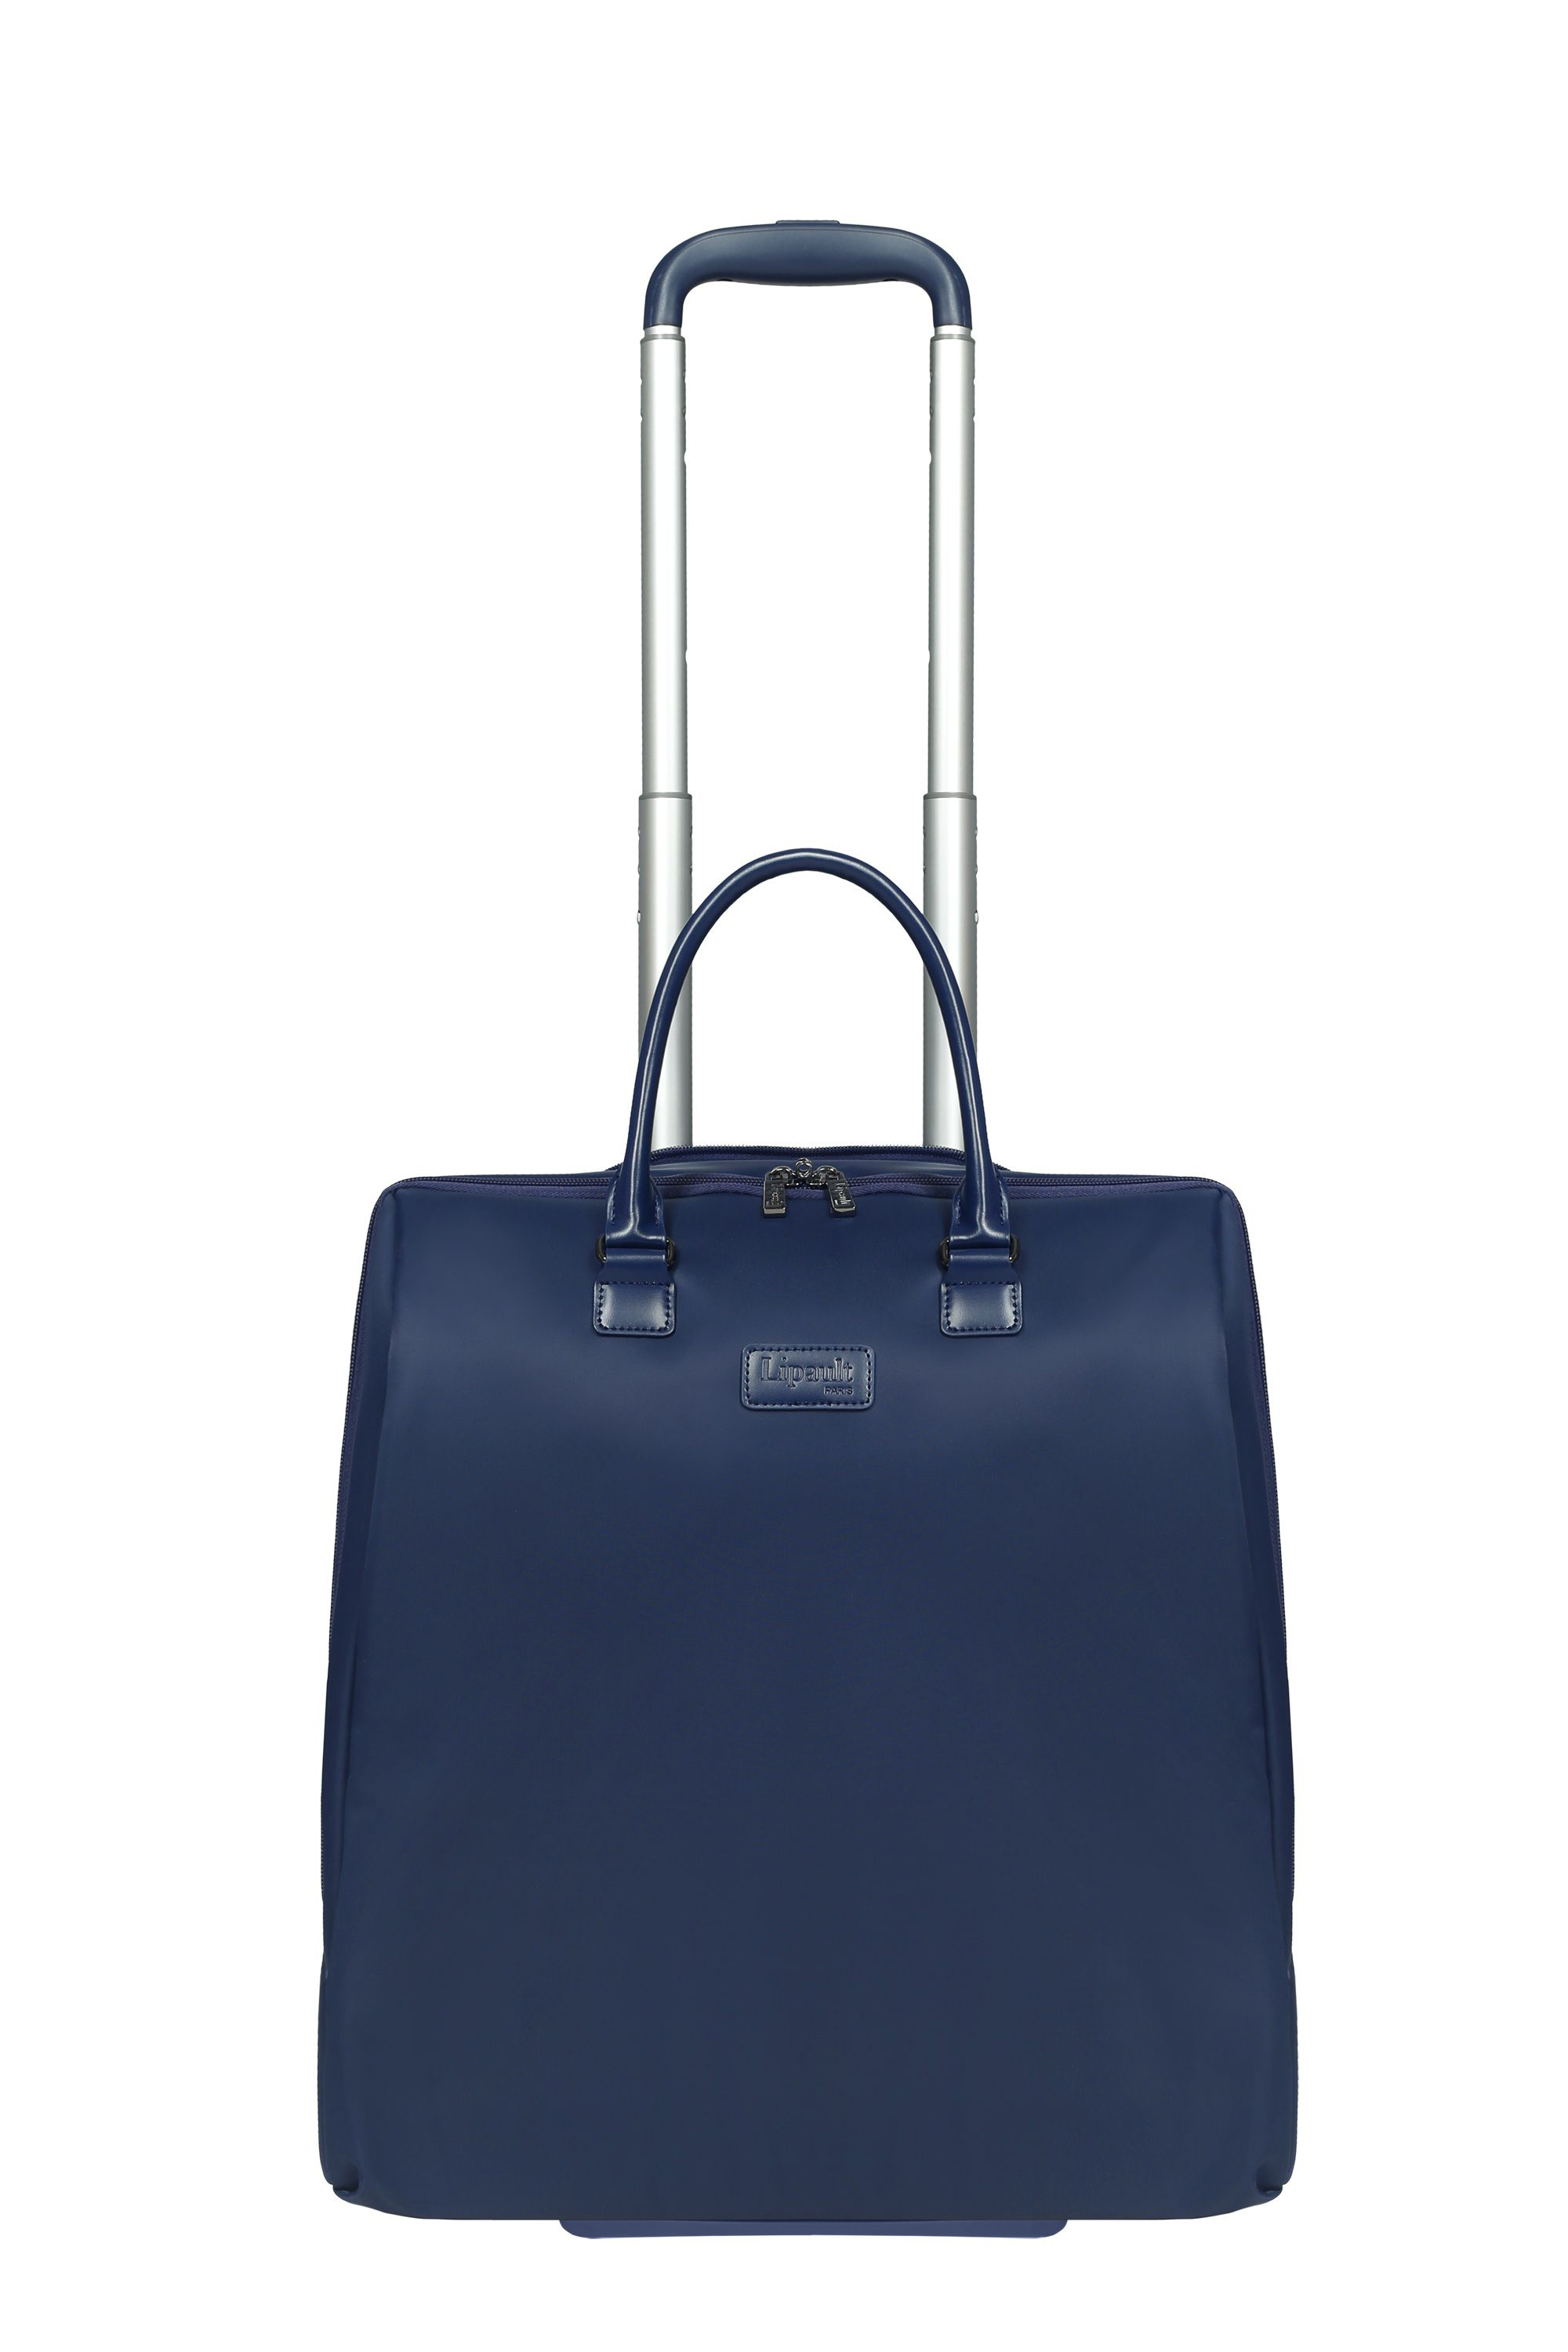 Lipault LADY PLUME ROLLING TOTE 15` NAVY, Blue